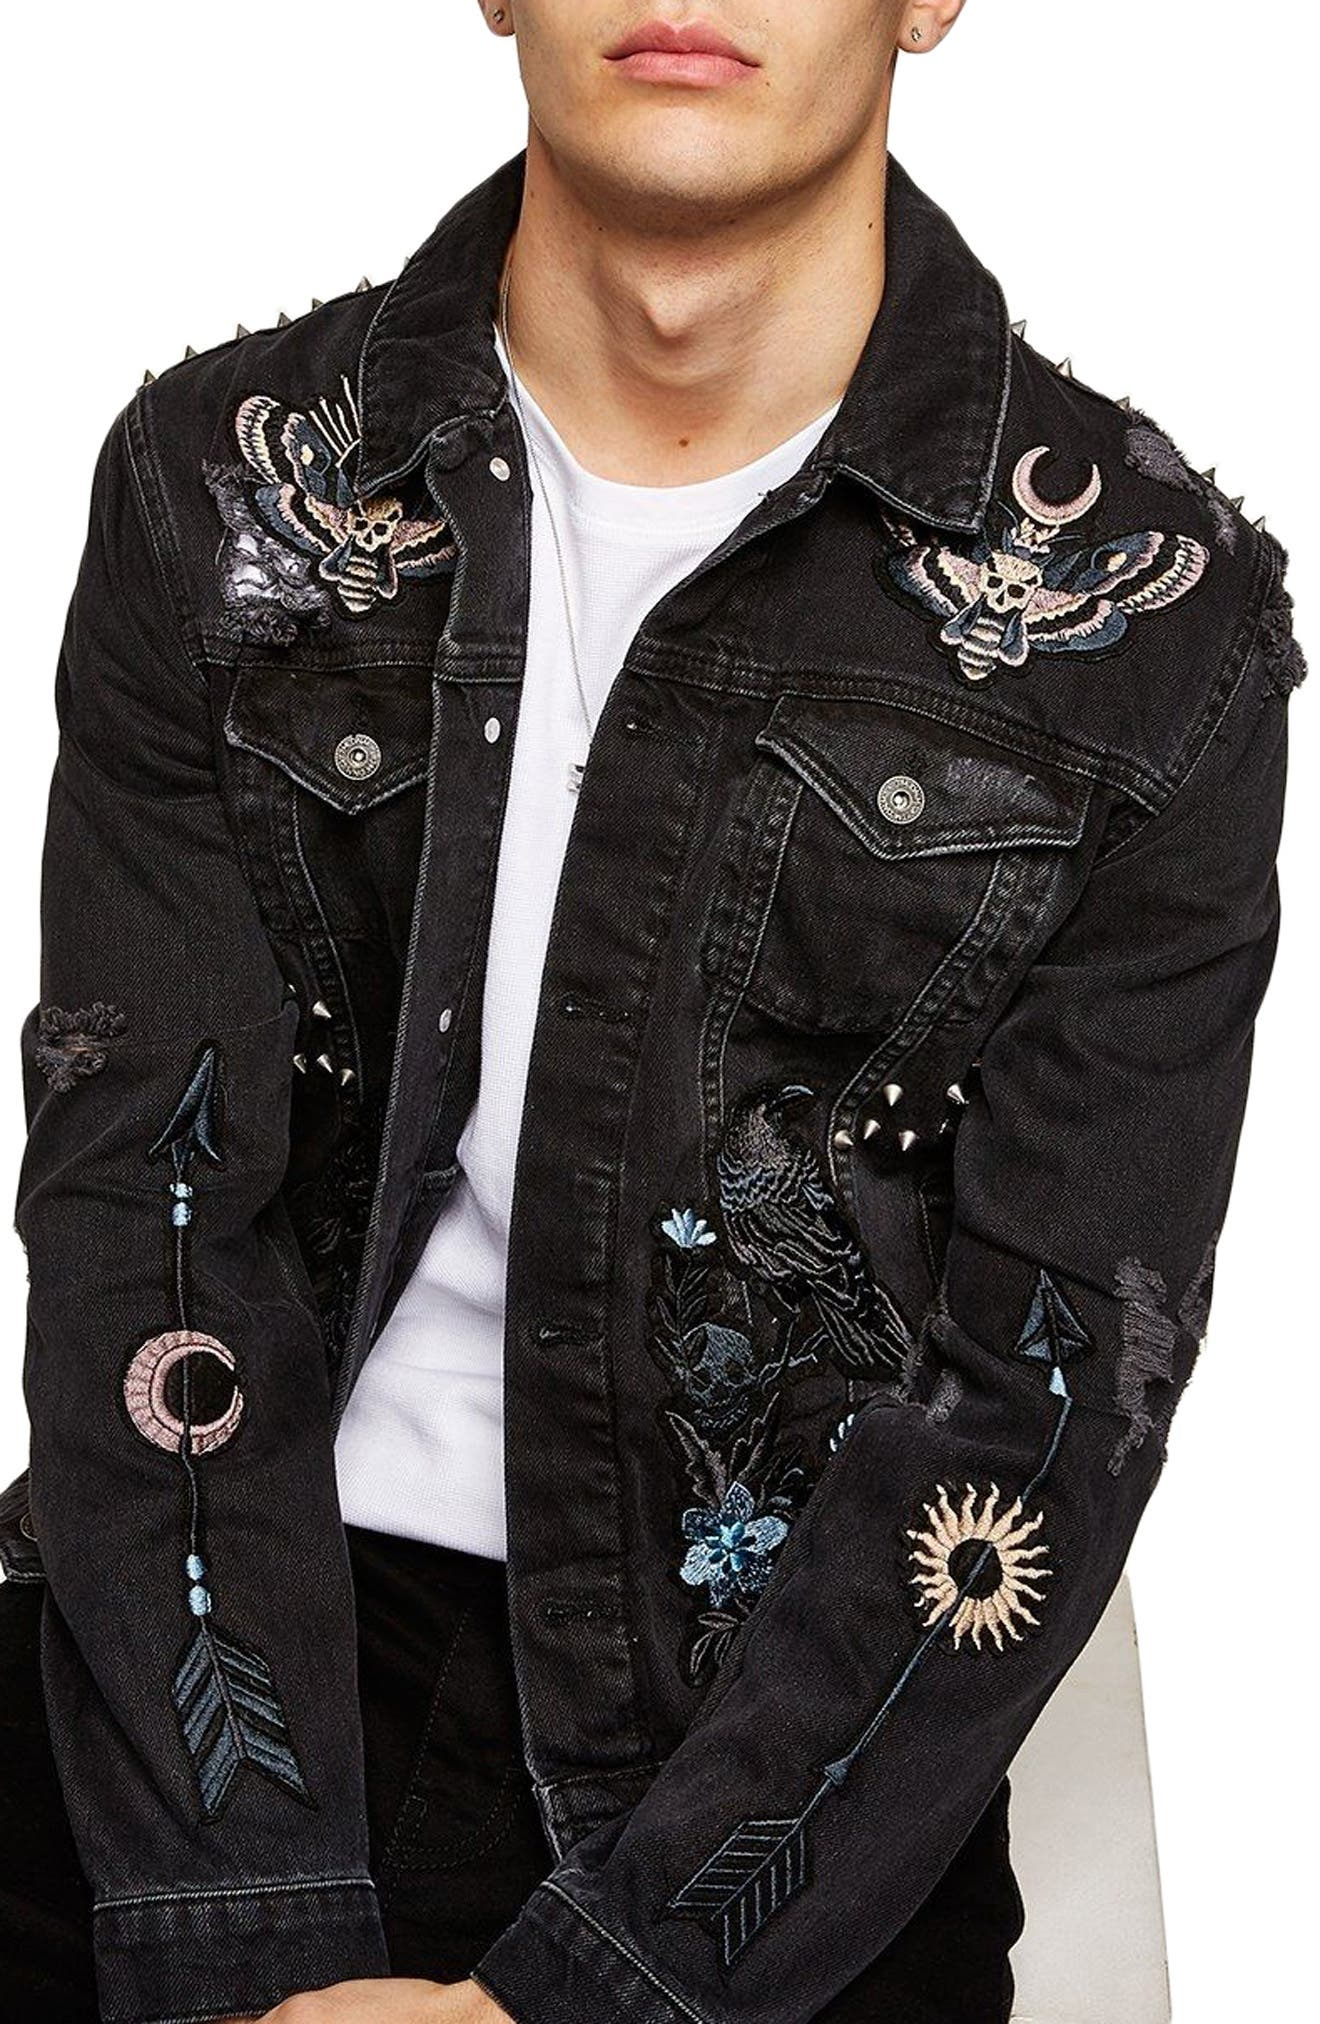 Sleepy Hollow Slim Fit Denim Jacket with Patches,                         Main,                         color, 001